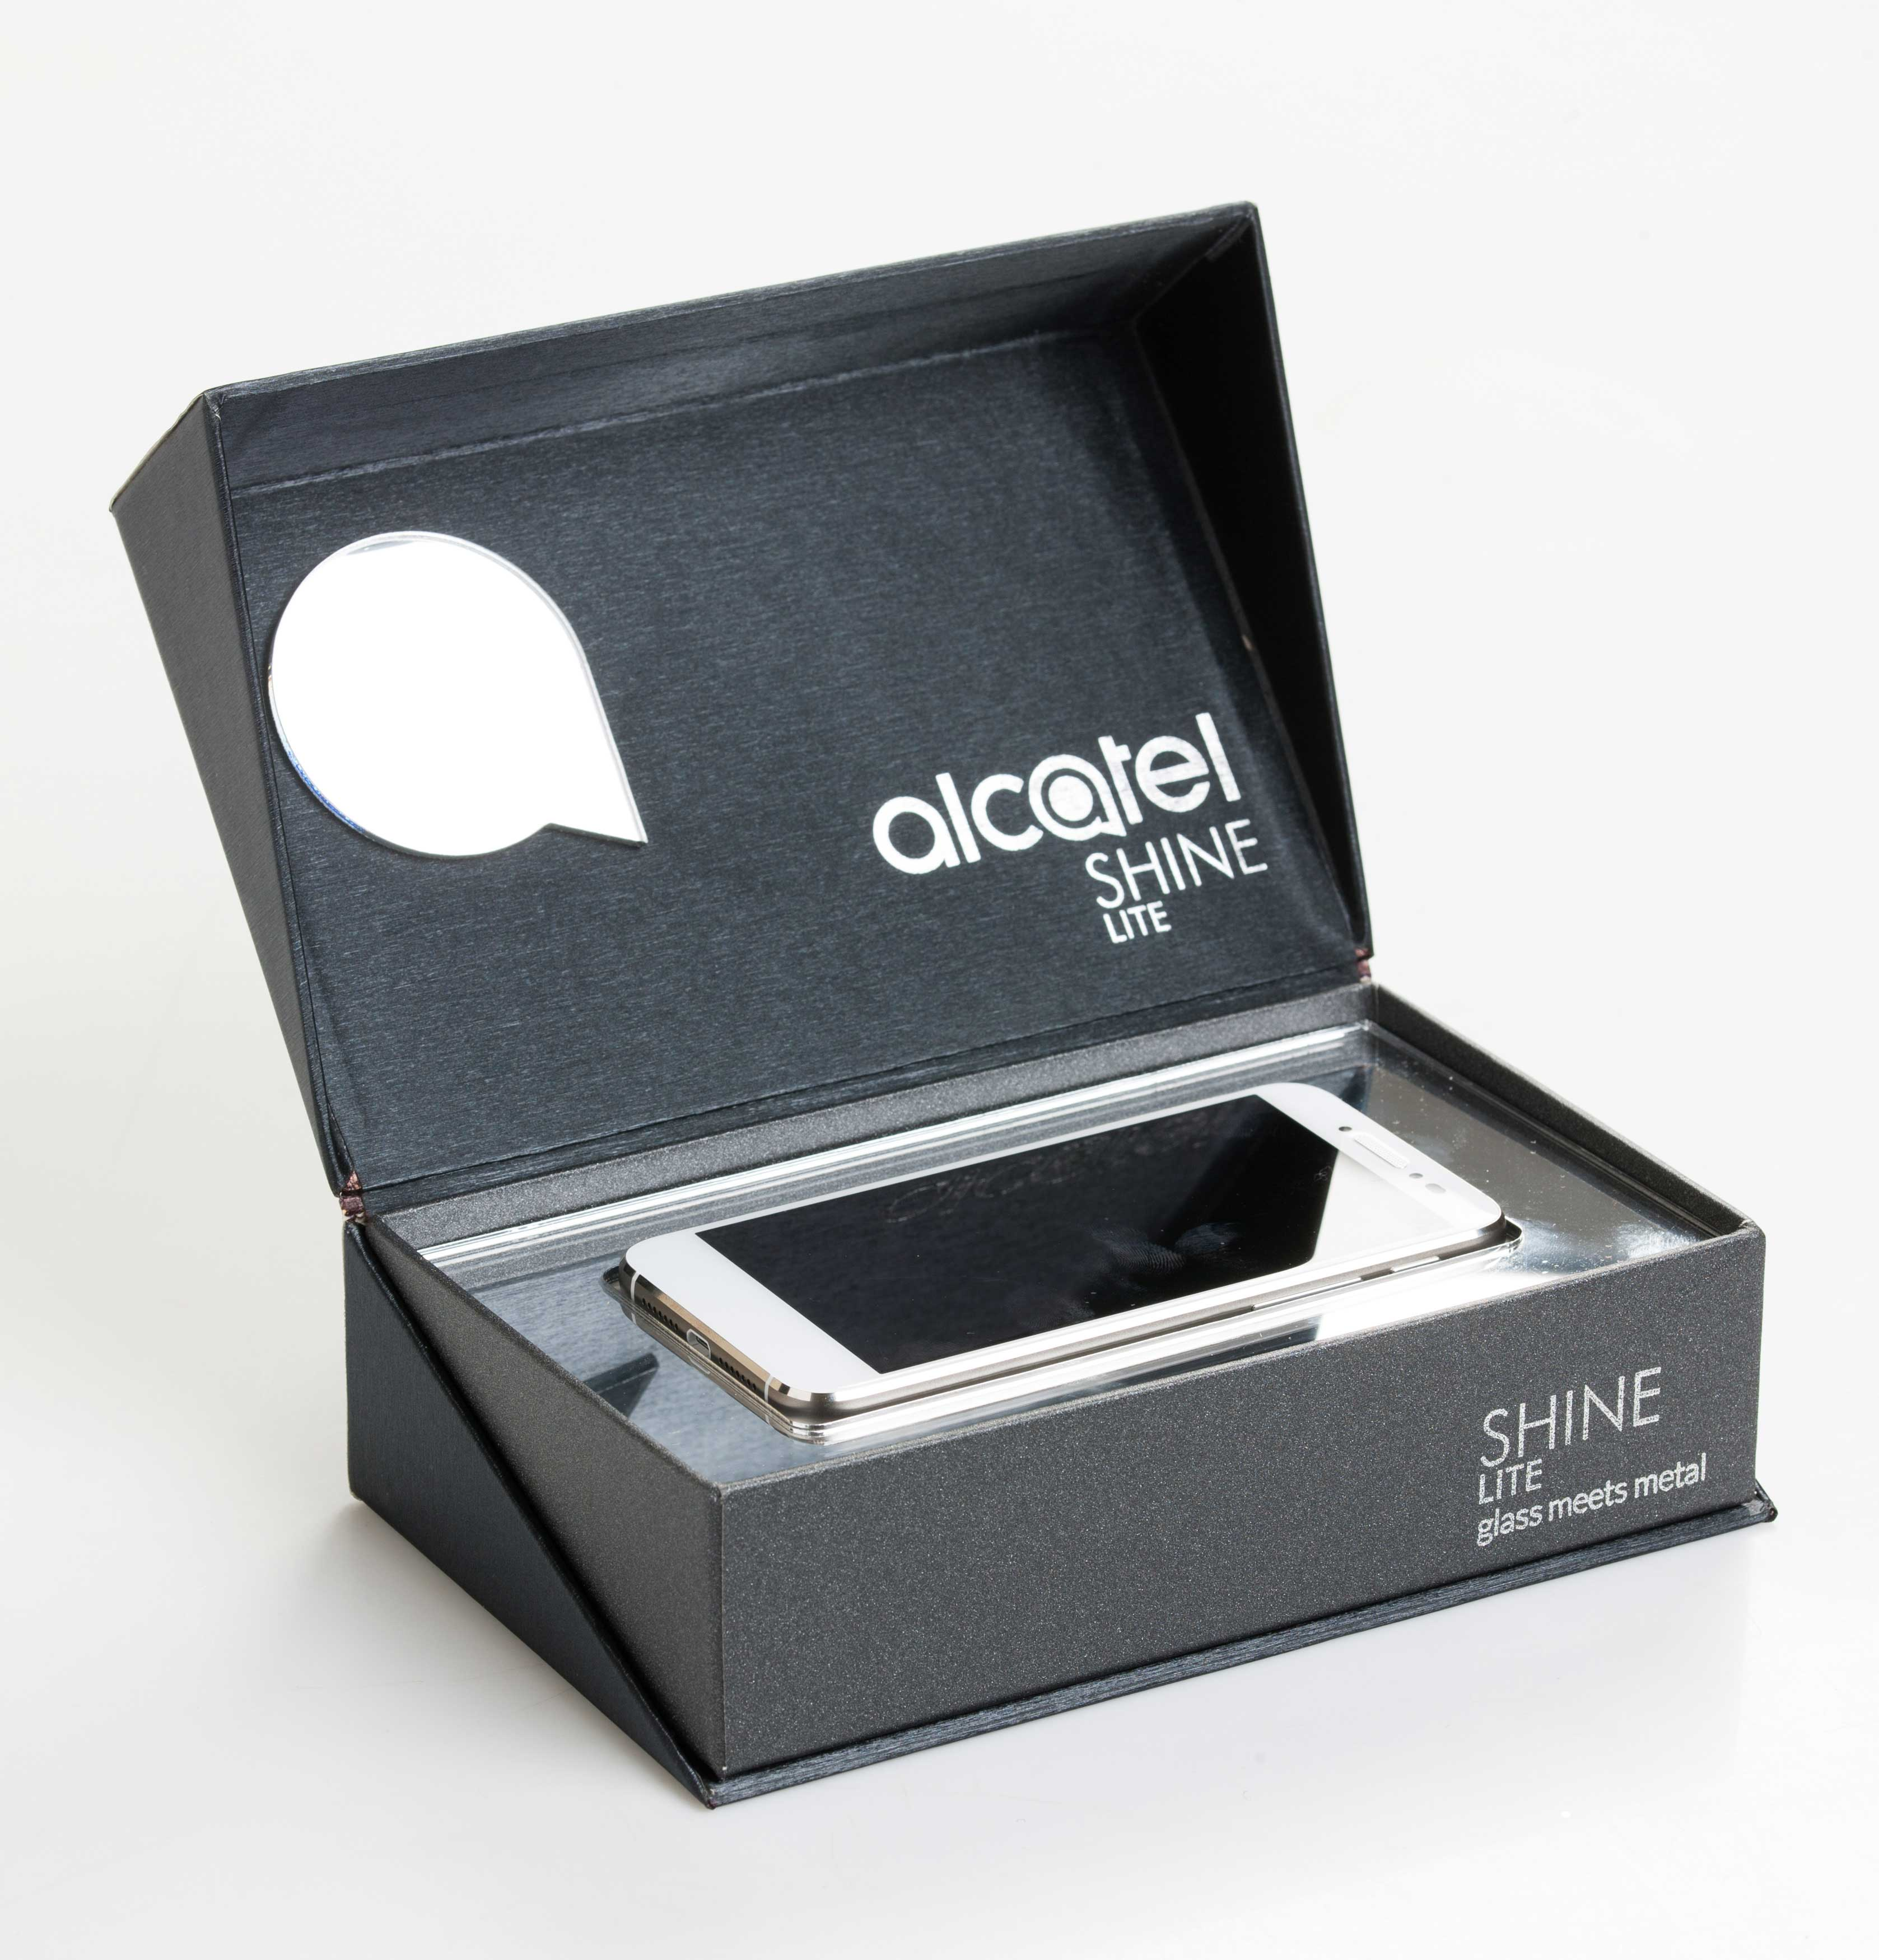 Alcatel Shine lite_7